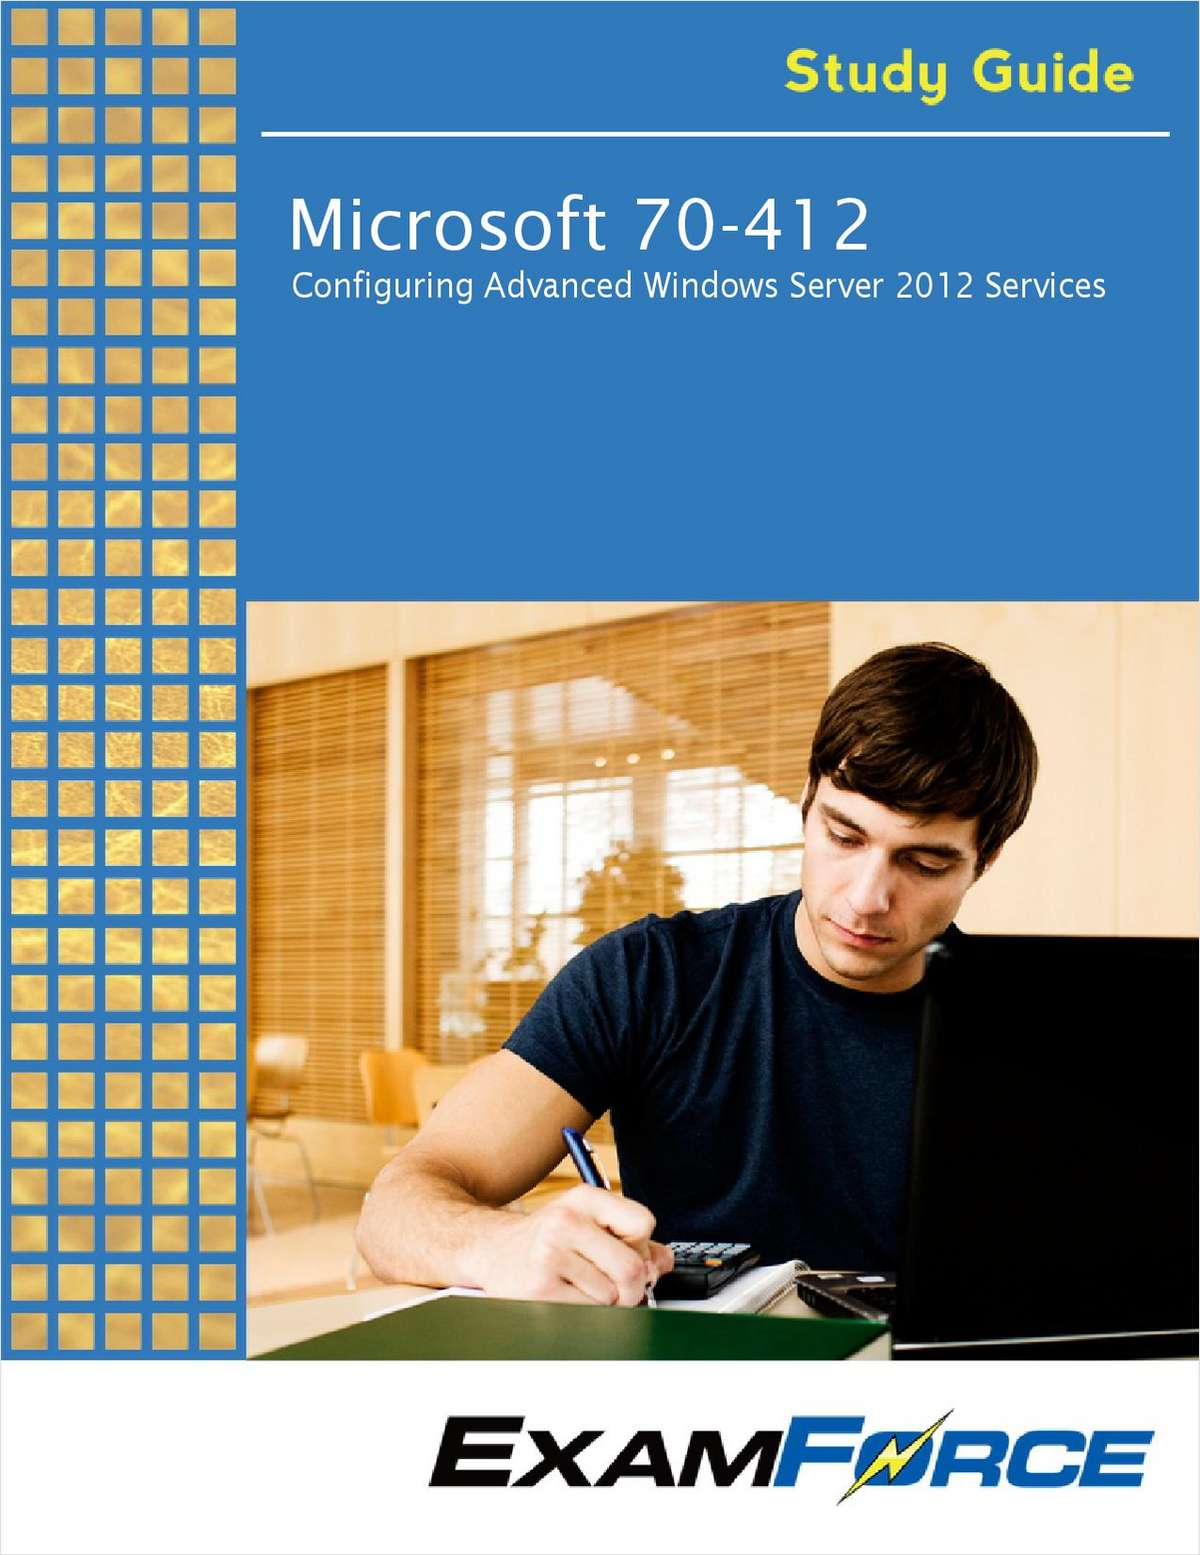 Microsoft 70-412: Configuring Advanced Windows Server 2012 (FREE Study Guide)